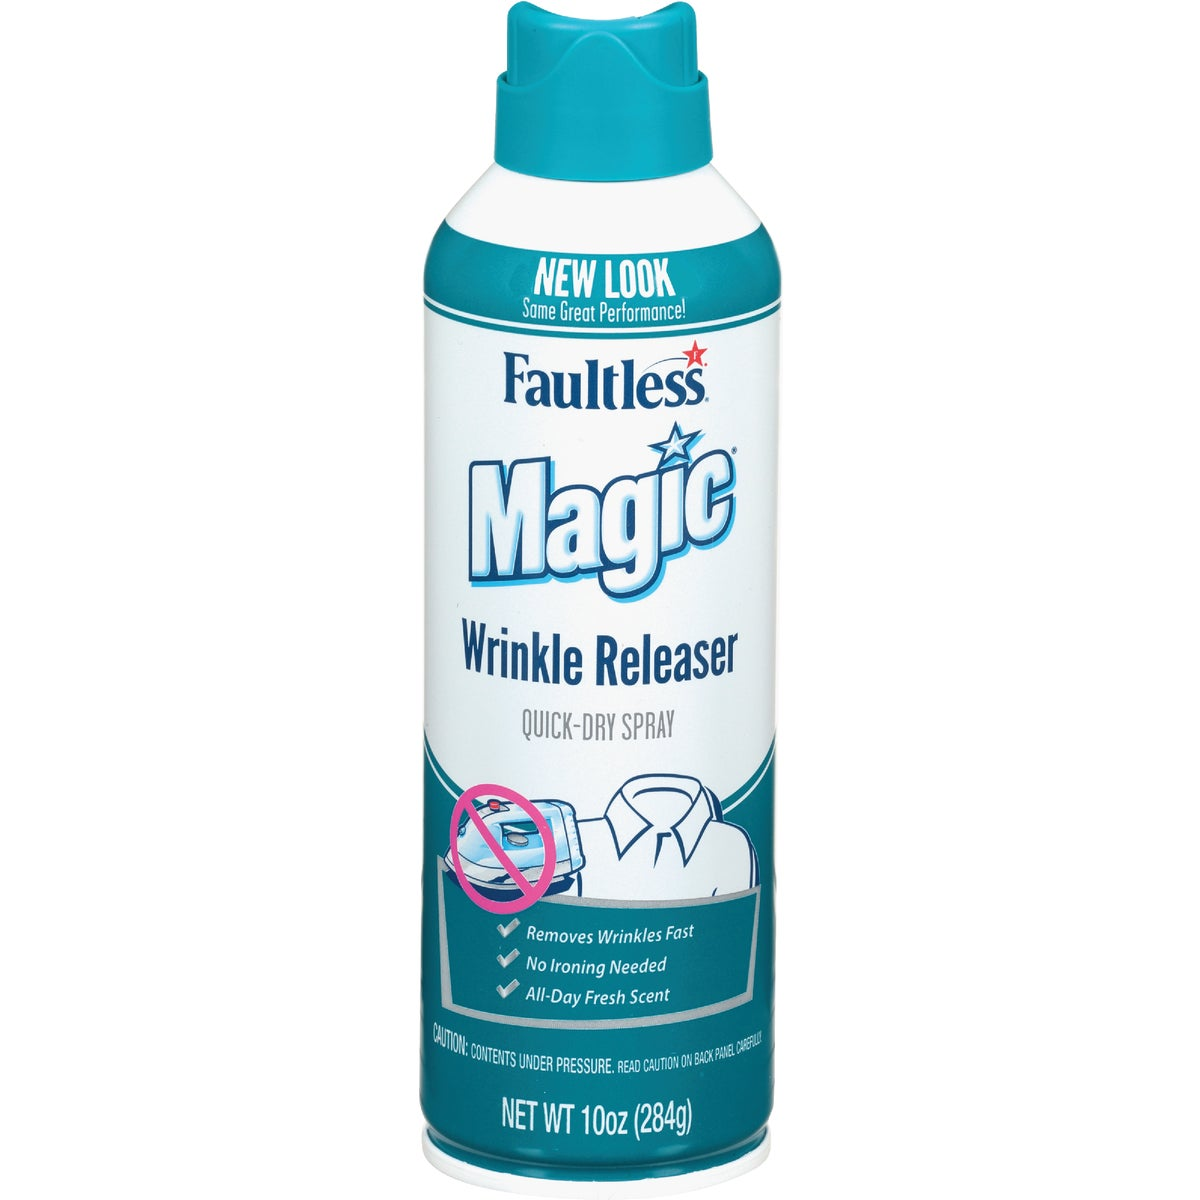 10OZ MGC WRINKLE REMOVER - 38206 by Faultless Starch